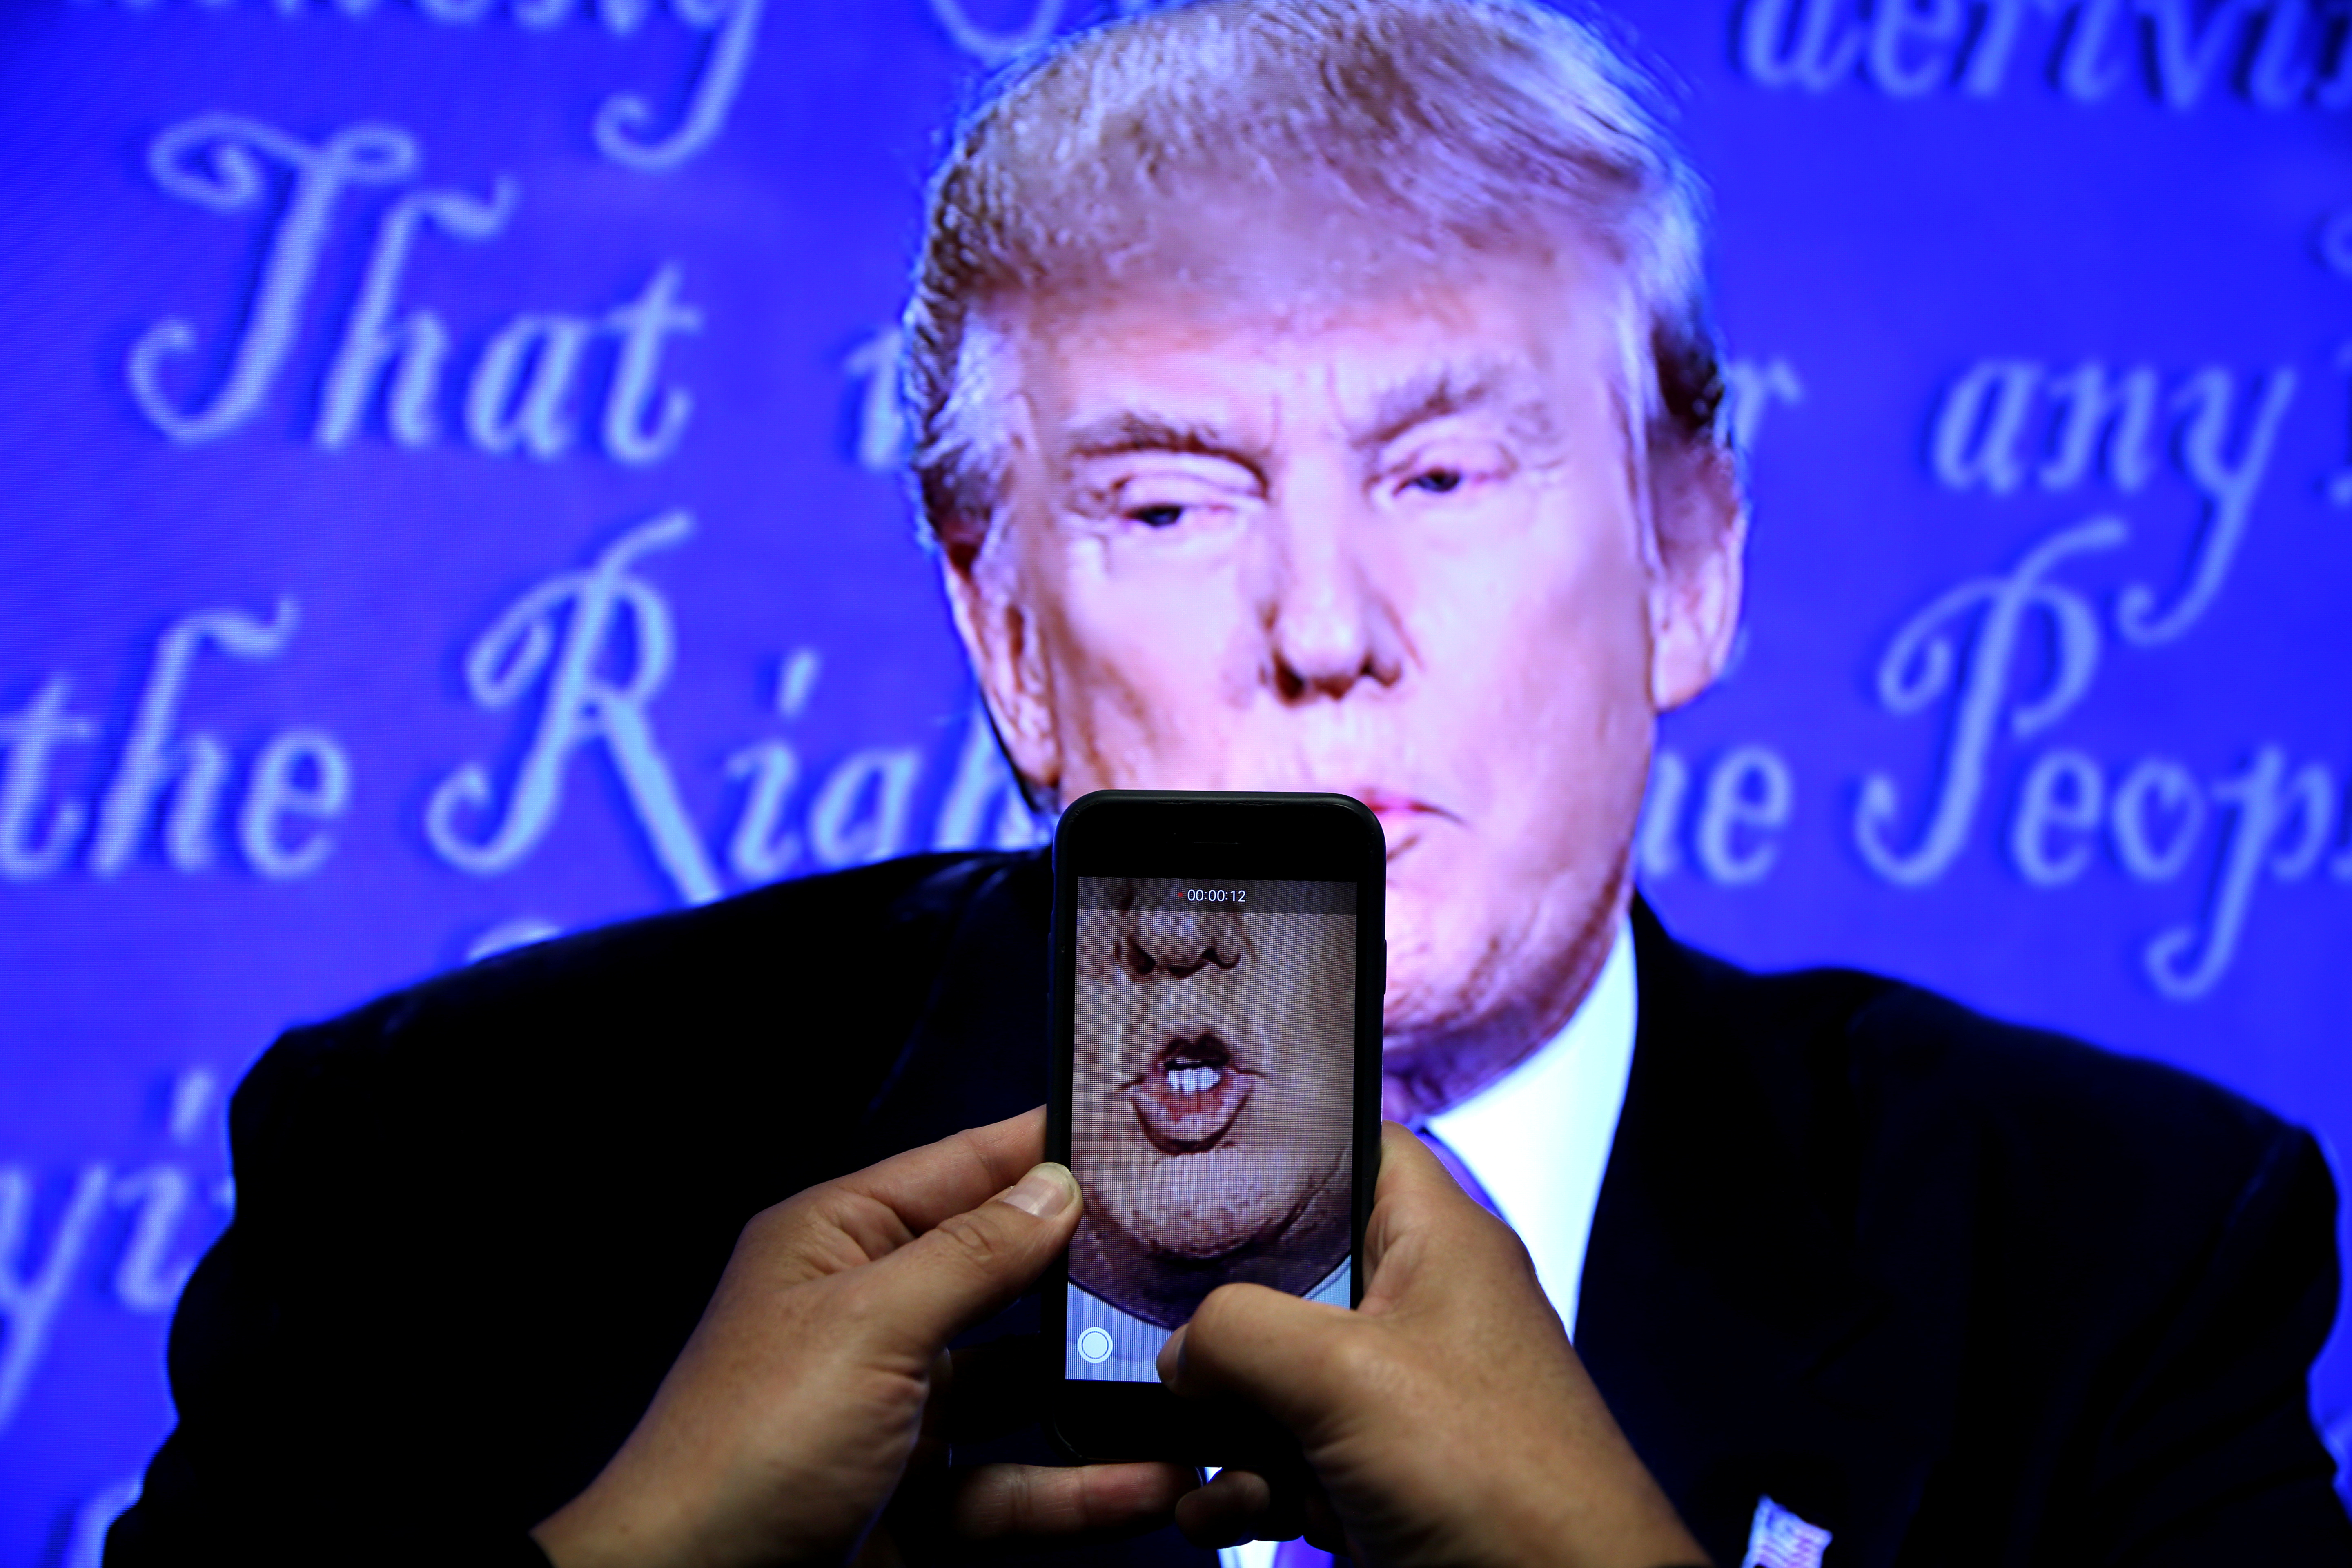 A journalist records a video from screen as Republican U.S. presidential nominee Donald Trump speaks during the first presidential debate with U.S. Democratic presidential candidate Hillary Clinton at Hofstra University in Hempstead